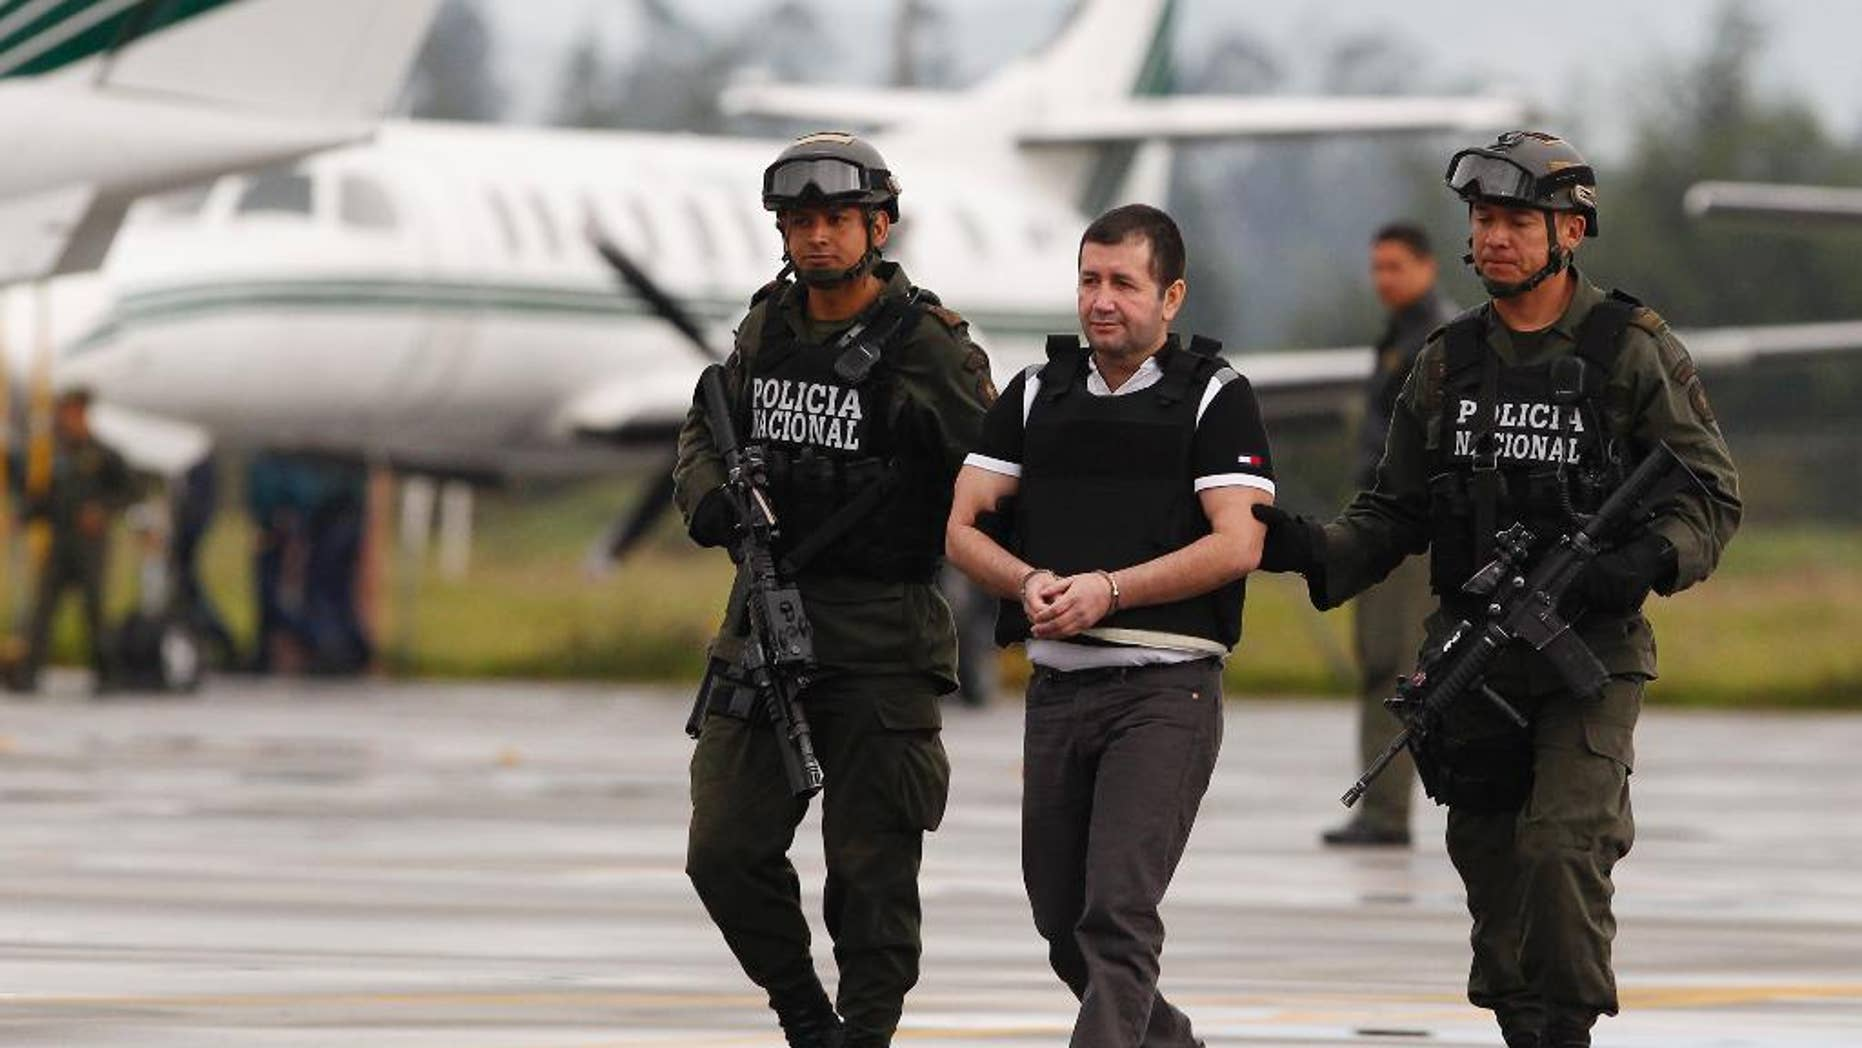 """FILE - In this Tuesday July 9, 2013 file photo, Daniel Barrera, center, is escorted by police to a waiting car prior to his extradition to the U.S. from the counter-narcotics base in Bogota, Colombia. Known as """"El Loco,"""" Spanish for """"The Madman,"""" Barrera is scheduled to be sentenced Mondauy, July 25, 2016, and faces a mandatory minimum of 10 years in prison and up to life after pleading guilty to a drug trafficking charge. (AP Photo/Fernando Vergara, File)"""